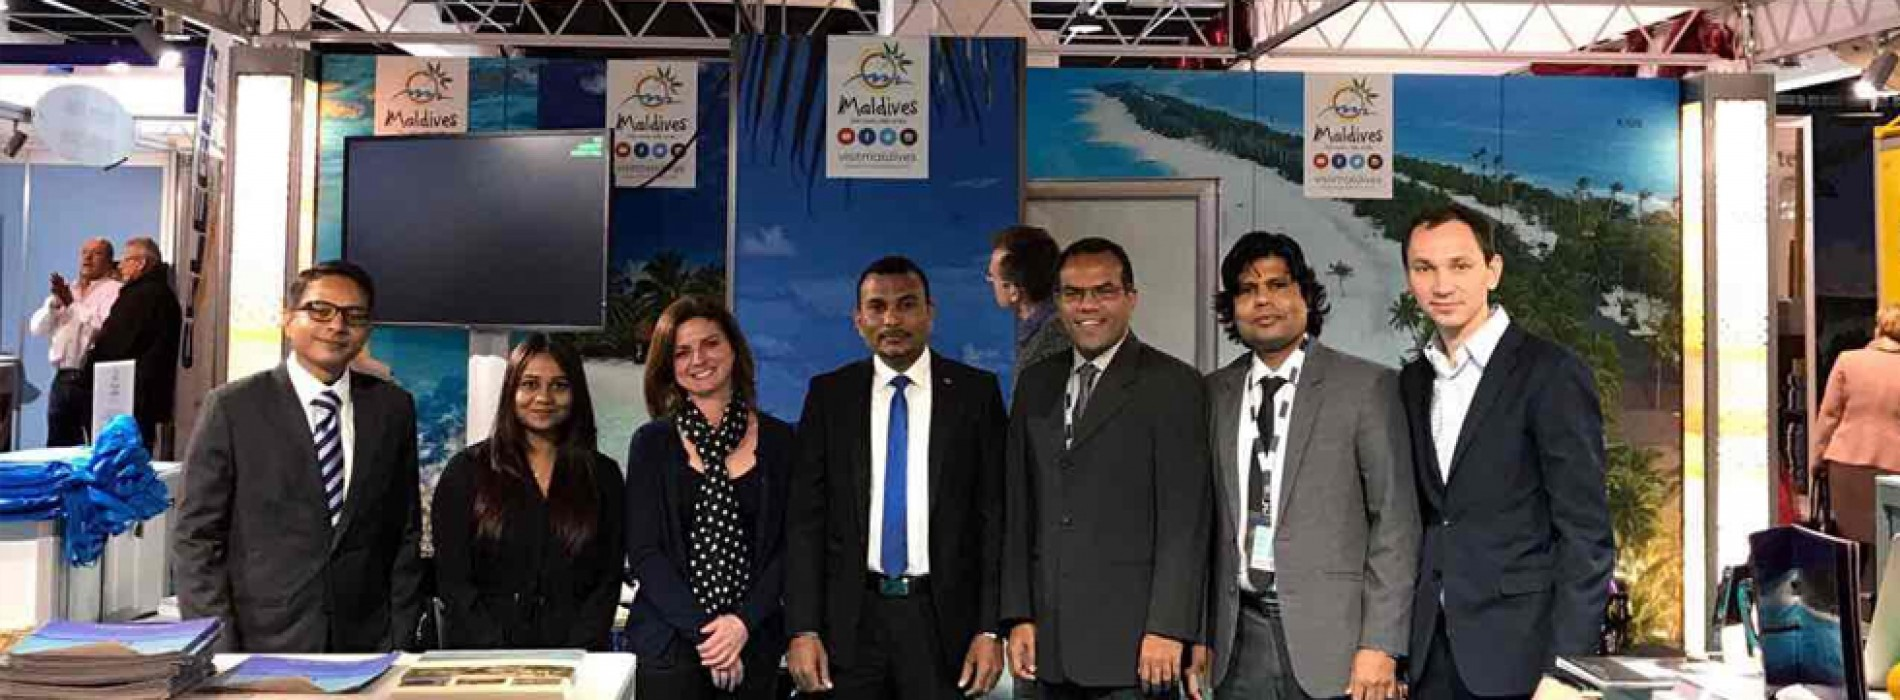 Maldives Shines at the largest Swiss Holiday & Travel Fair – FESPO